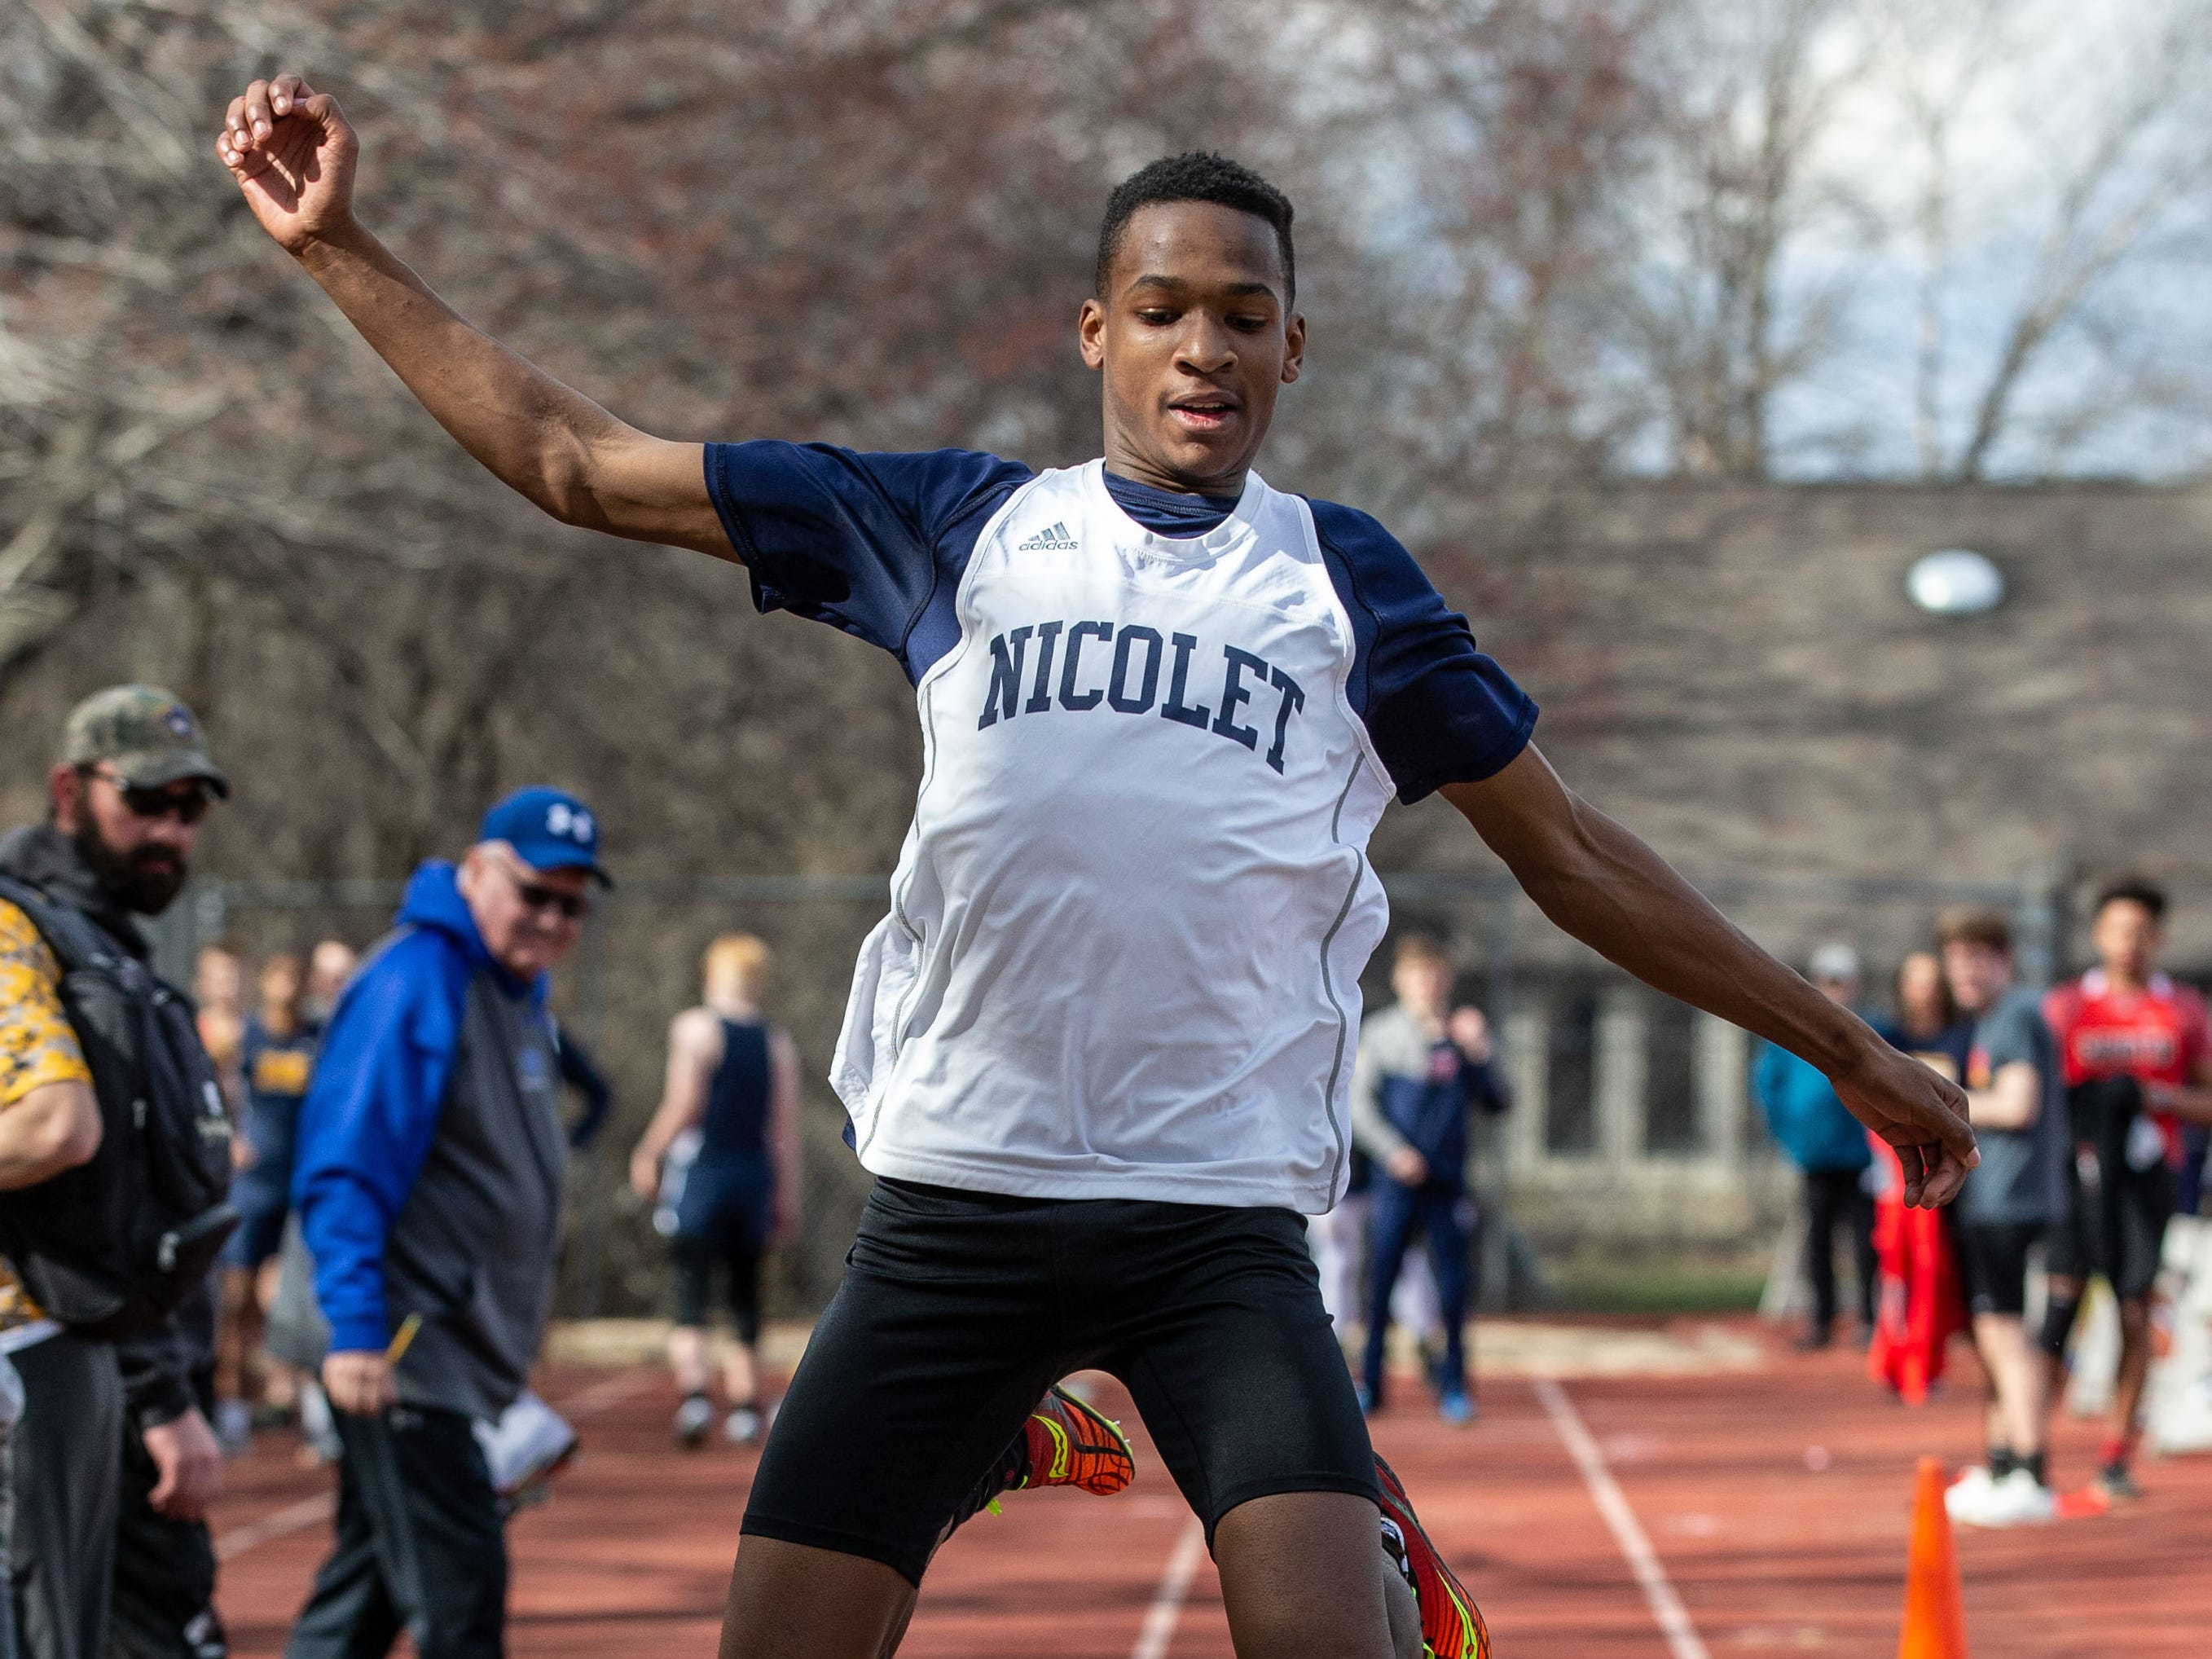 Nicolet's Jeremy Kobe competes in the triple jump during the Mike Gain 50th Annual Spartan Invitational at Brookfield East on Tuesday, April 9, 2019.